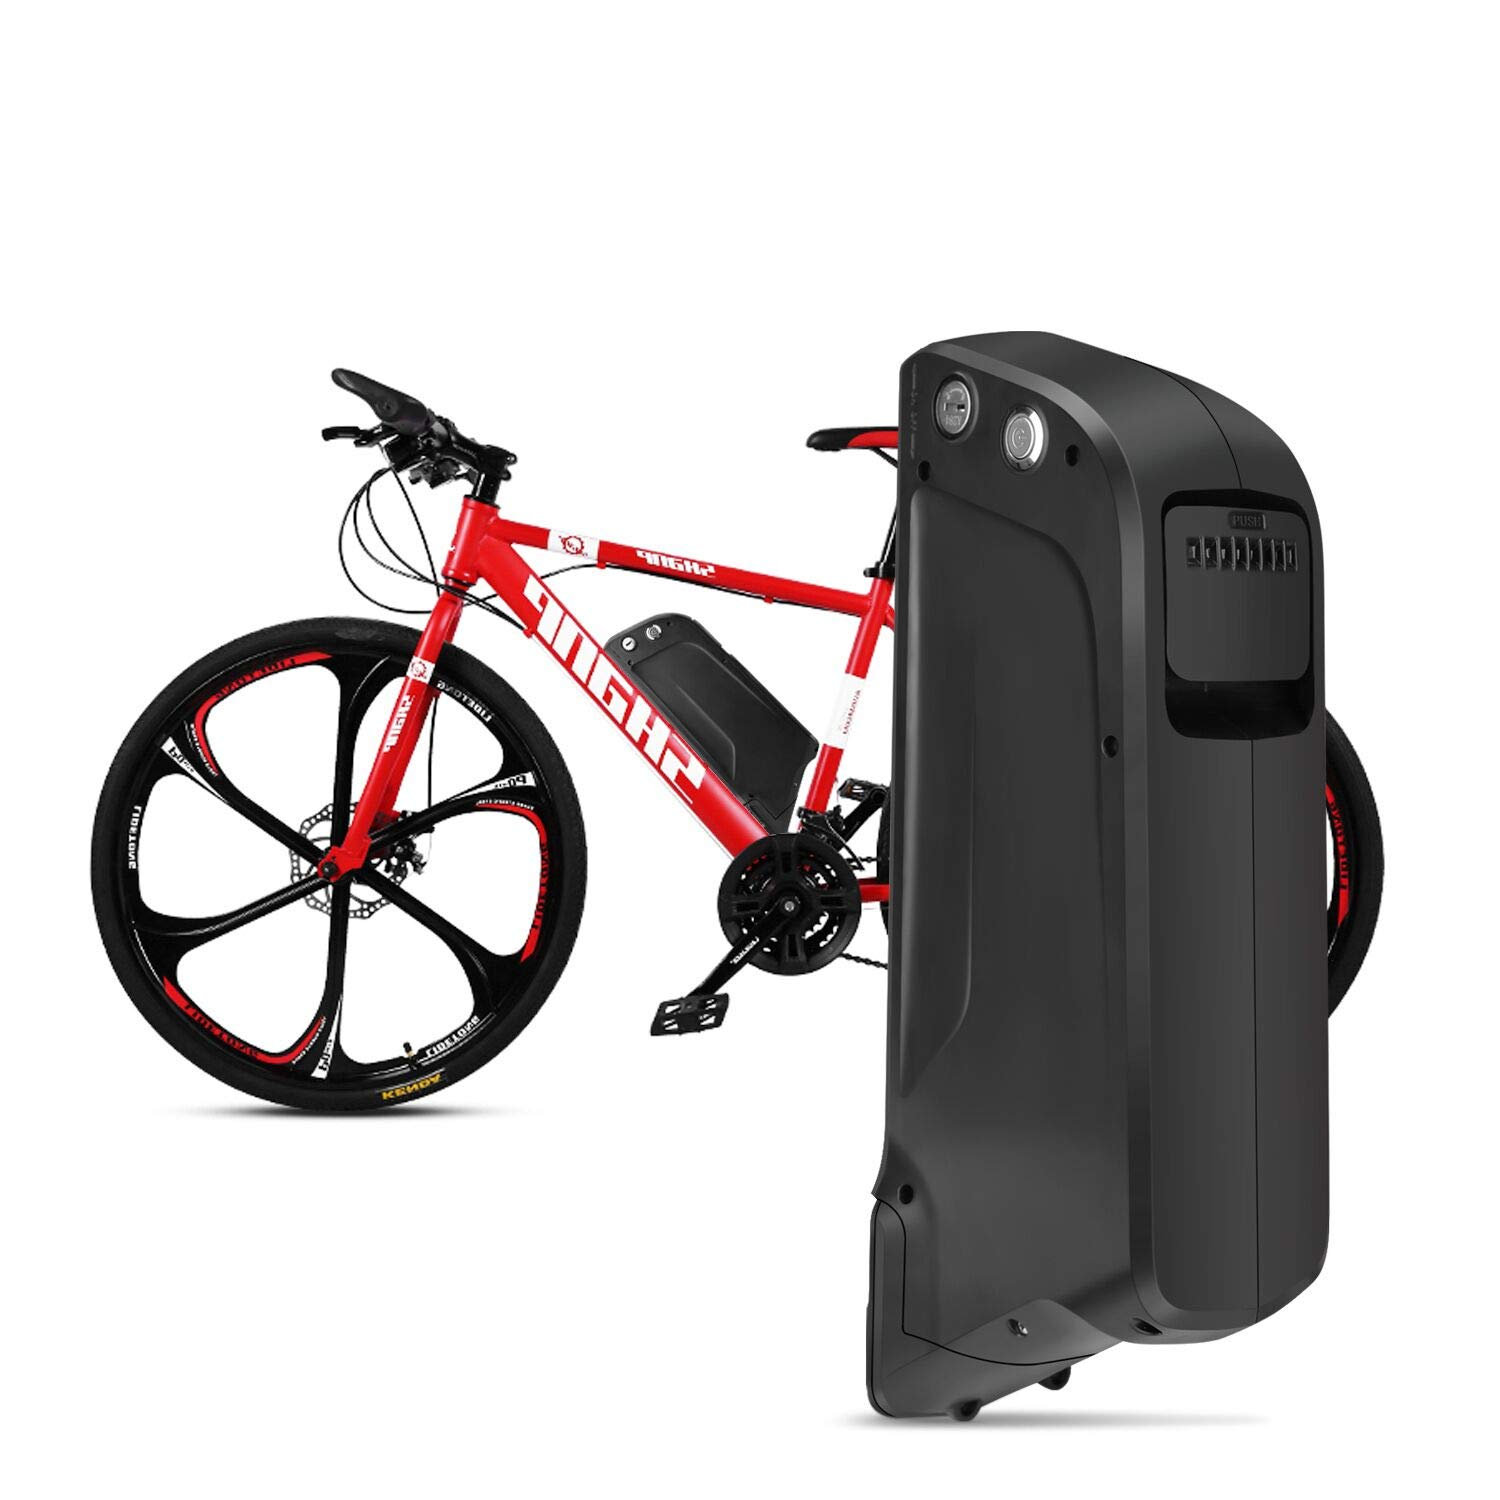 Sunbond EBike Battery 48V 11.6AH Lithium ion Rechargeable Battery with USB Port (Black), with Charger, Electric Bicycle Battery Pack Electric Bicycle Battery, Motorcycle Bicycle Mountain Bike